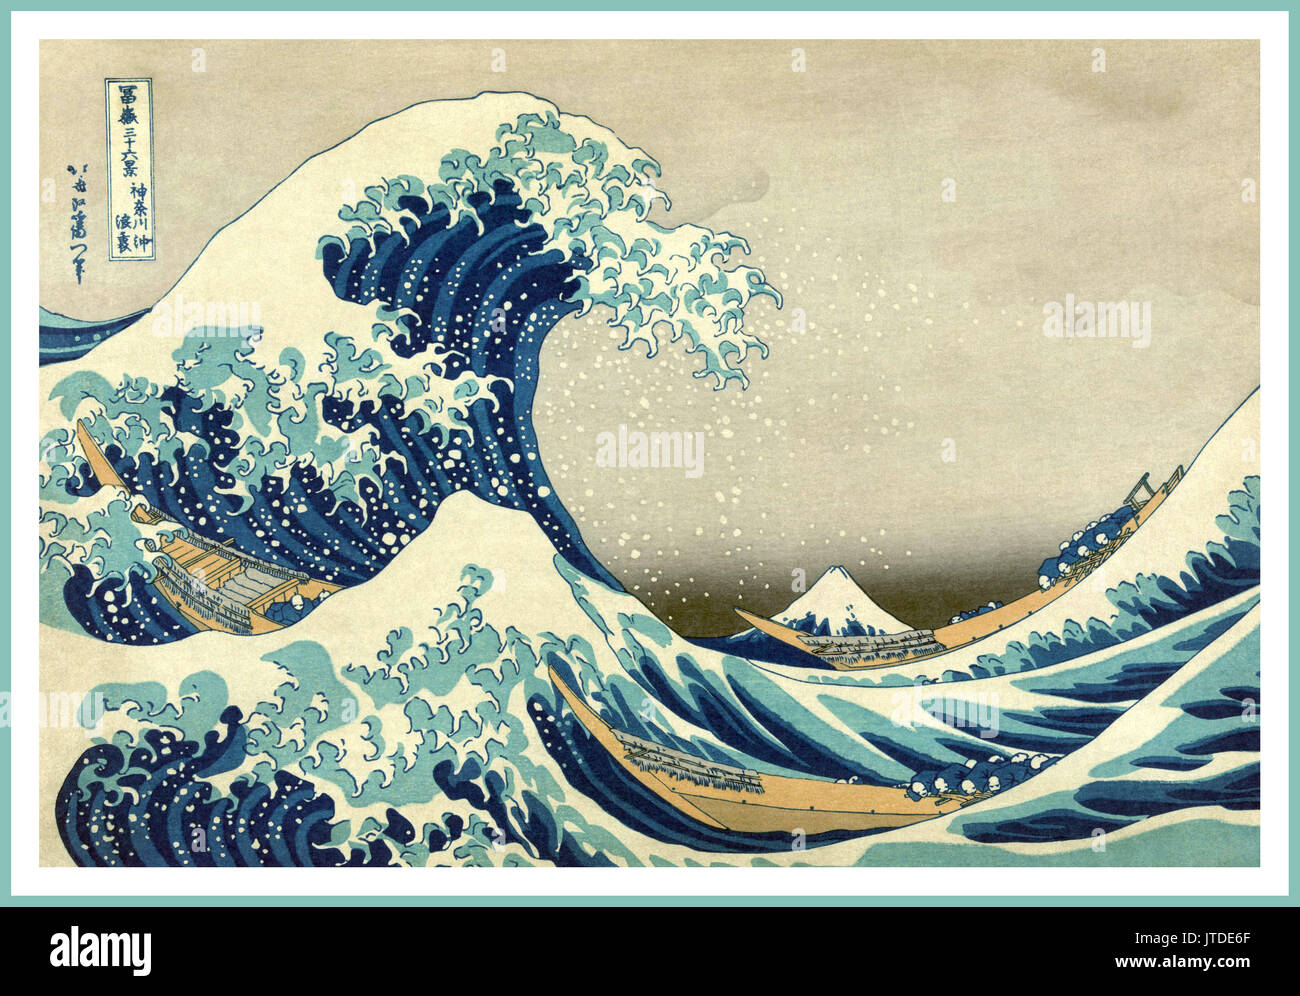 Mount Fuji Waves Wave Katsushika Hokusai Japan Vintage art poster made by artist Katsushika Hokusai as part of the - Stock Image